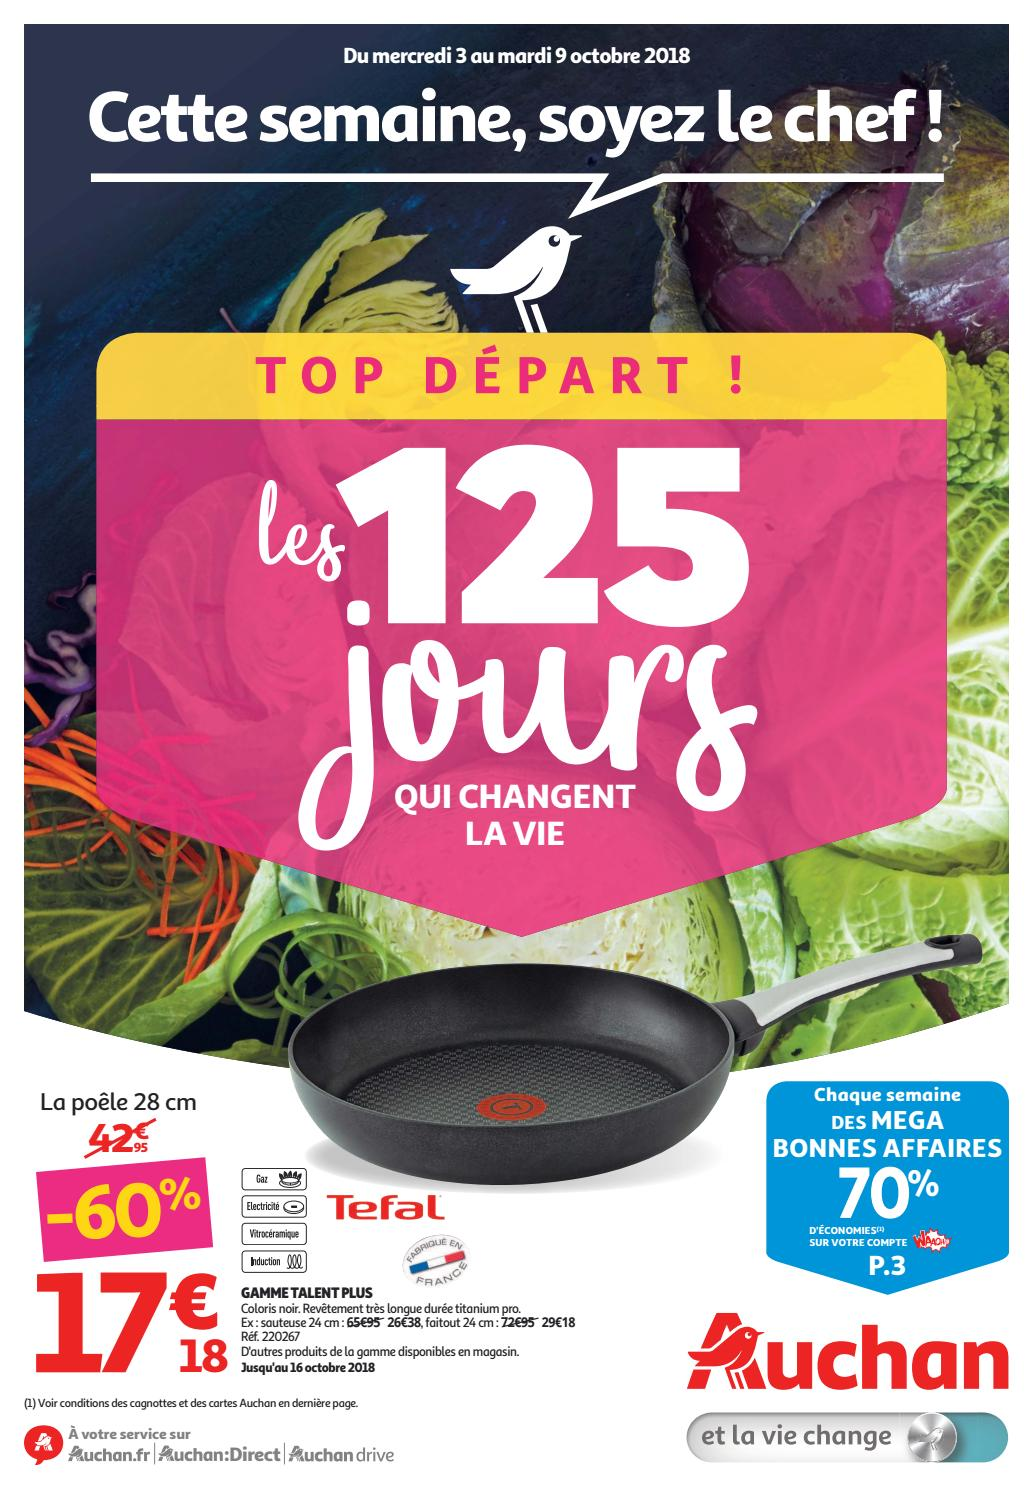 Hypermarché 9 Catalogue Octobre 3 Du 2018 Auchan Au dBxeCor